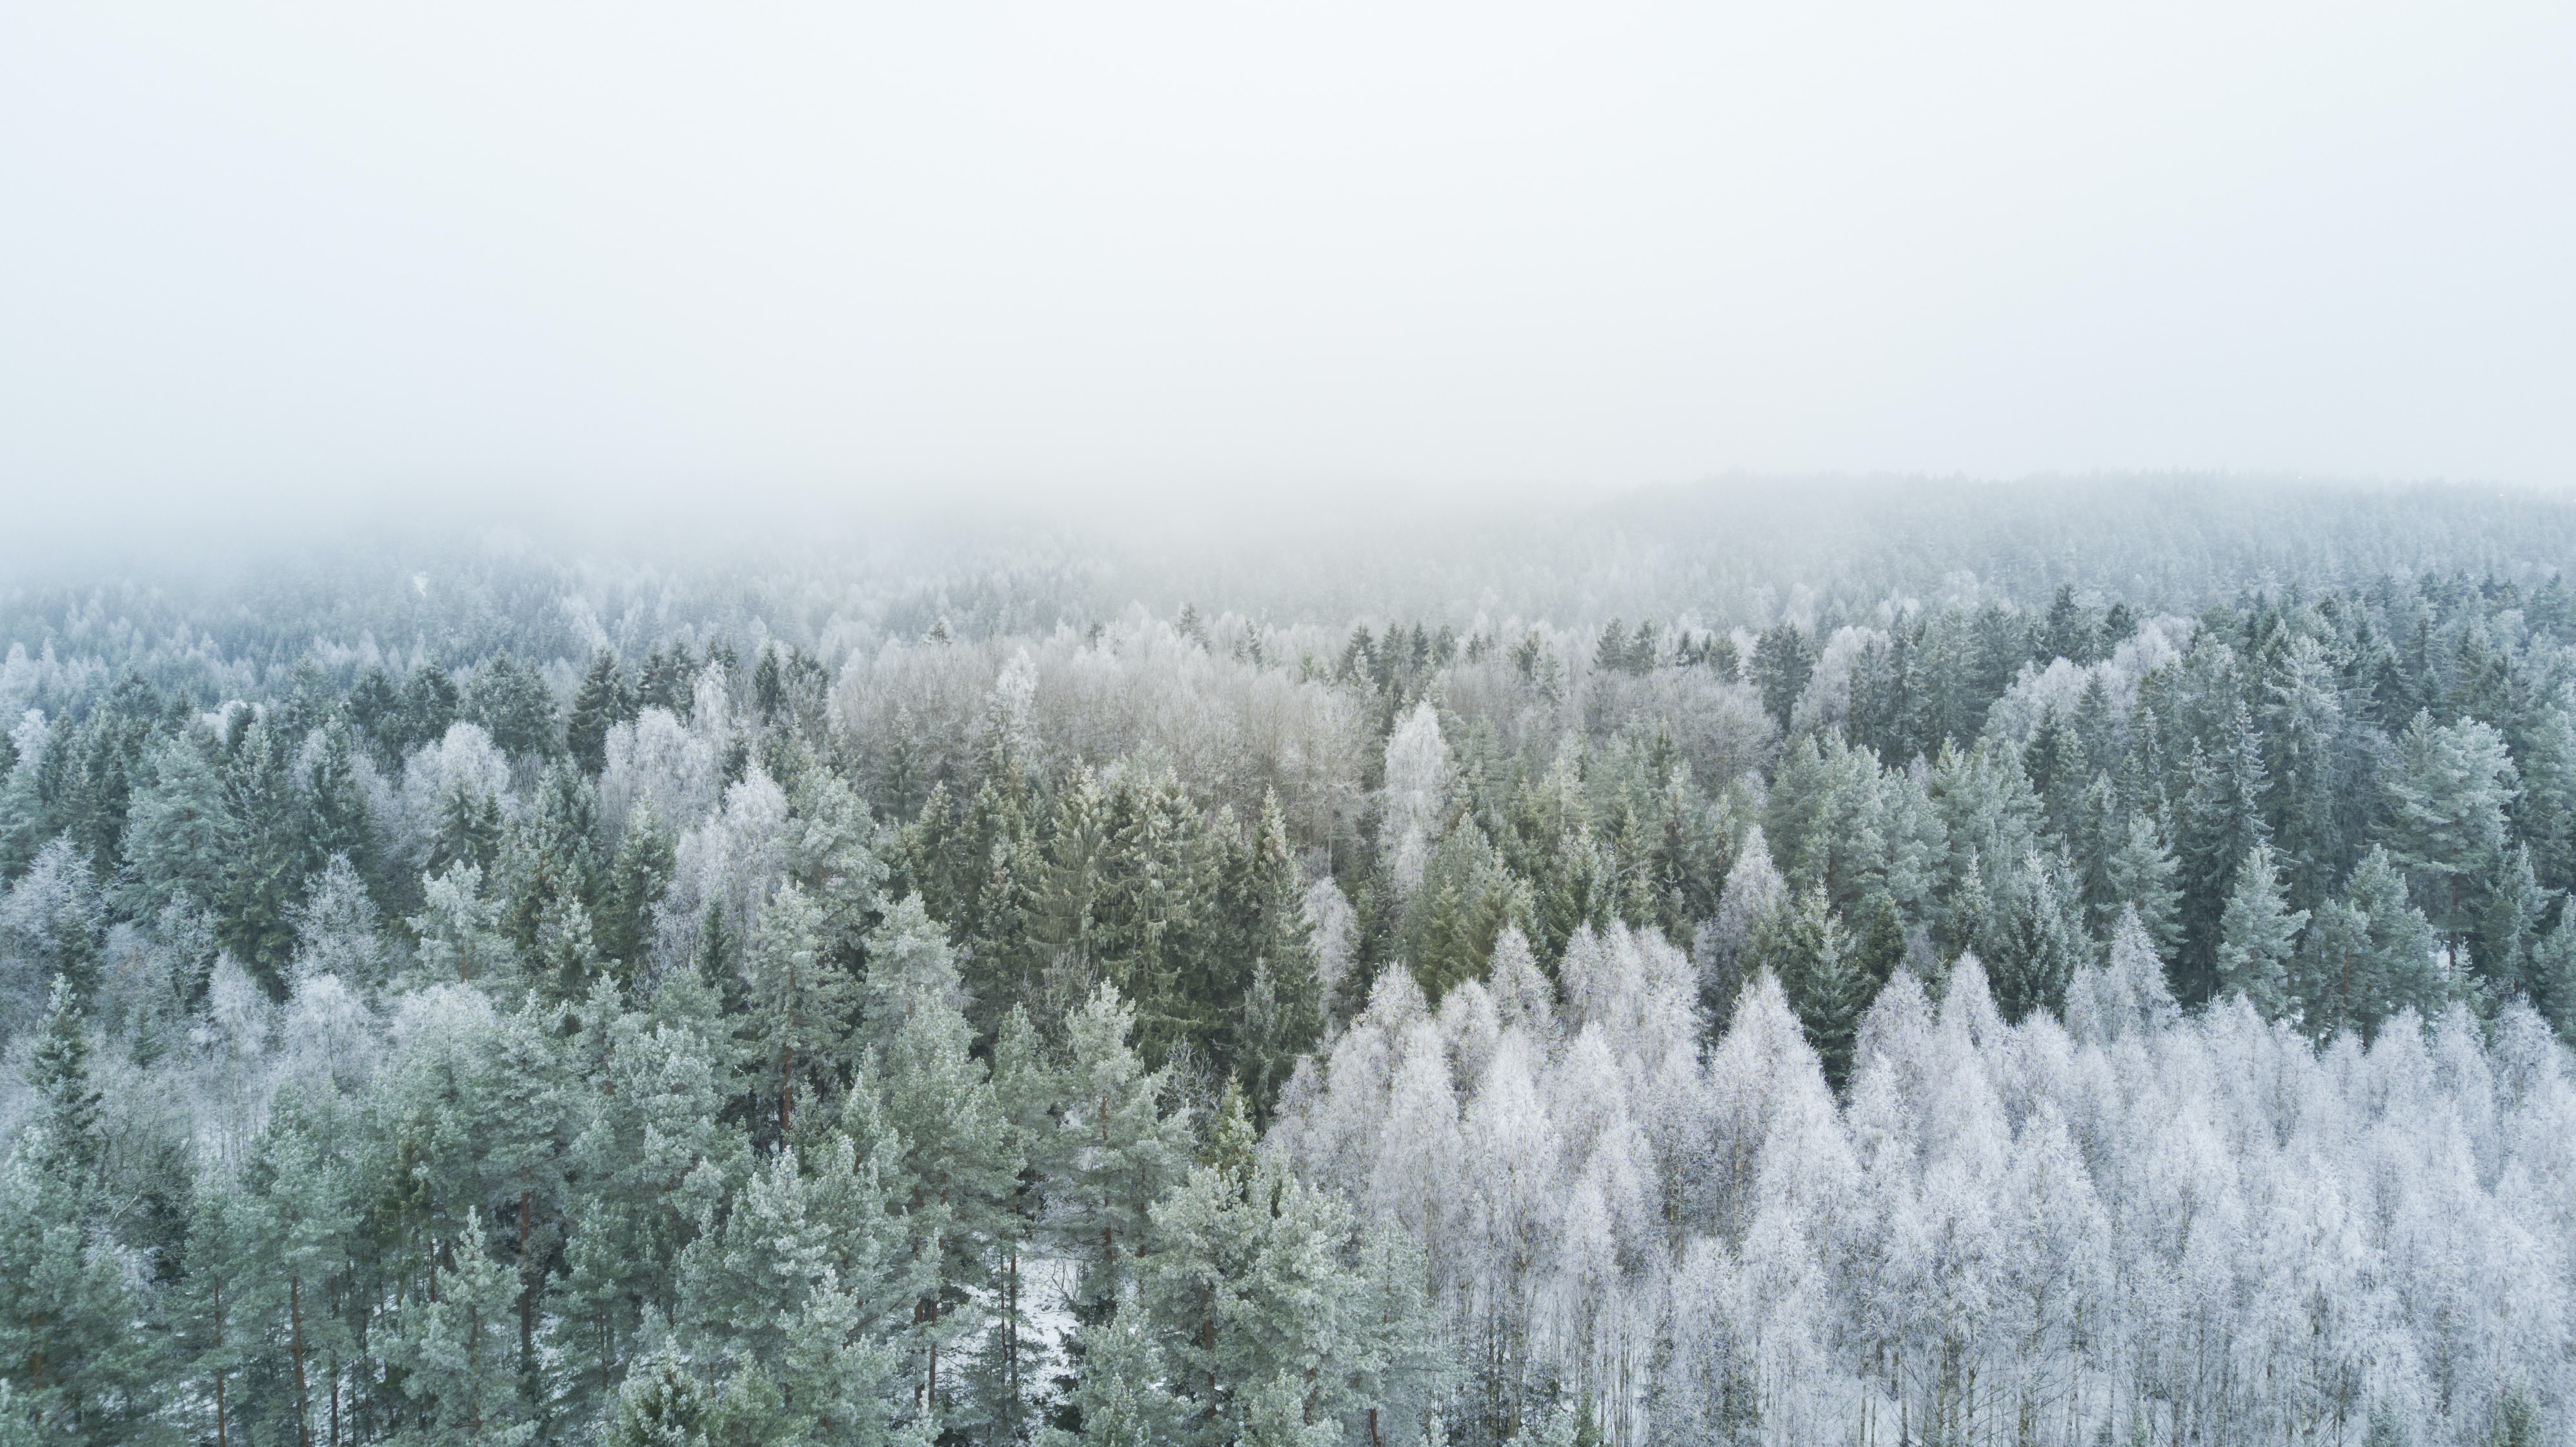 A vast evergreen forest with white frost on tree branches